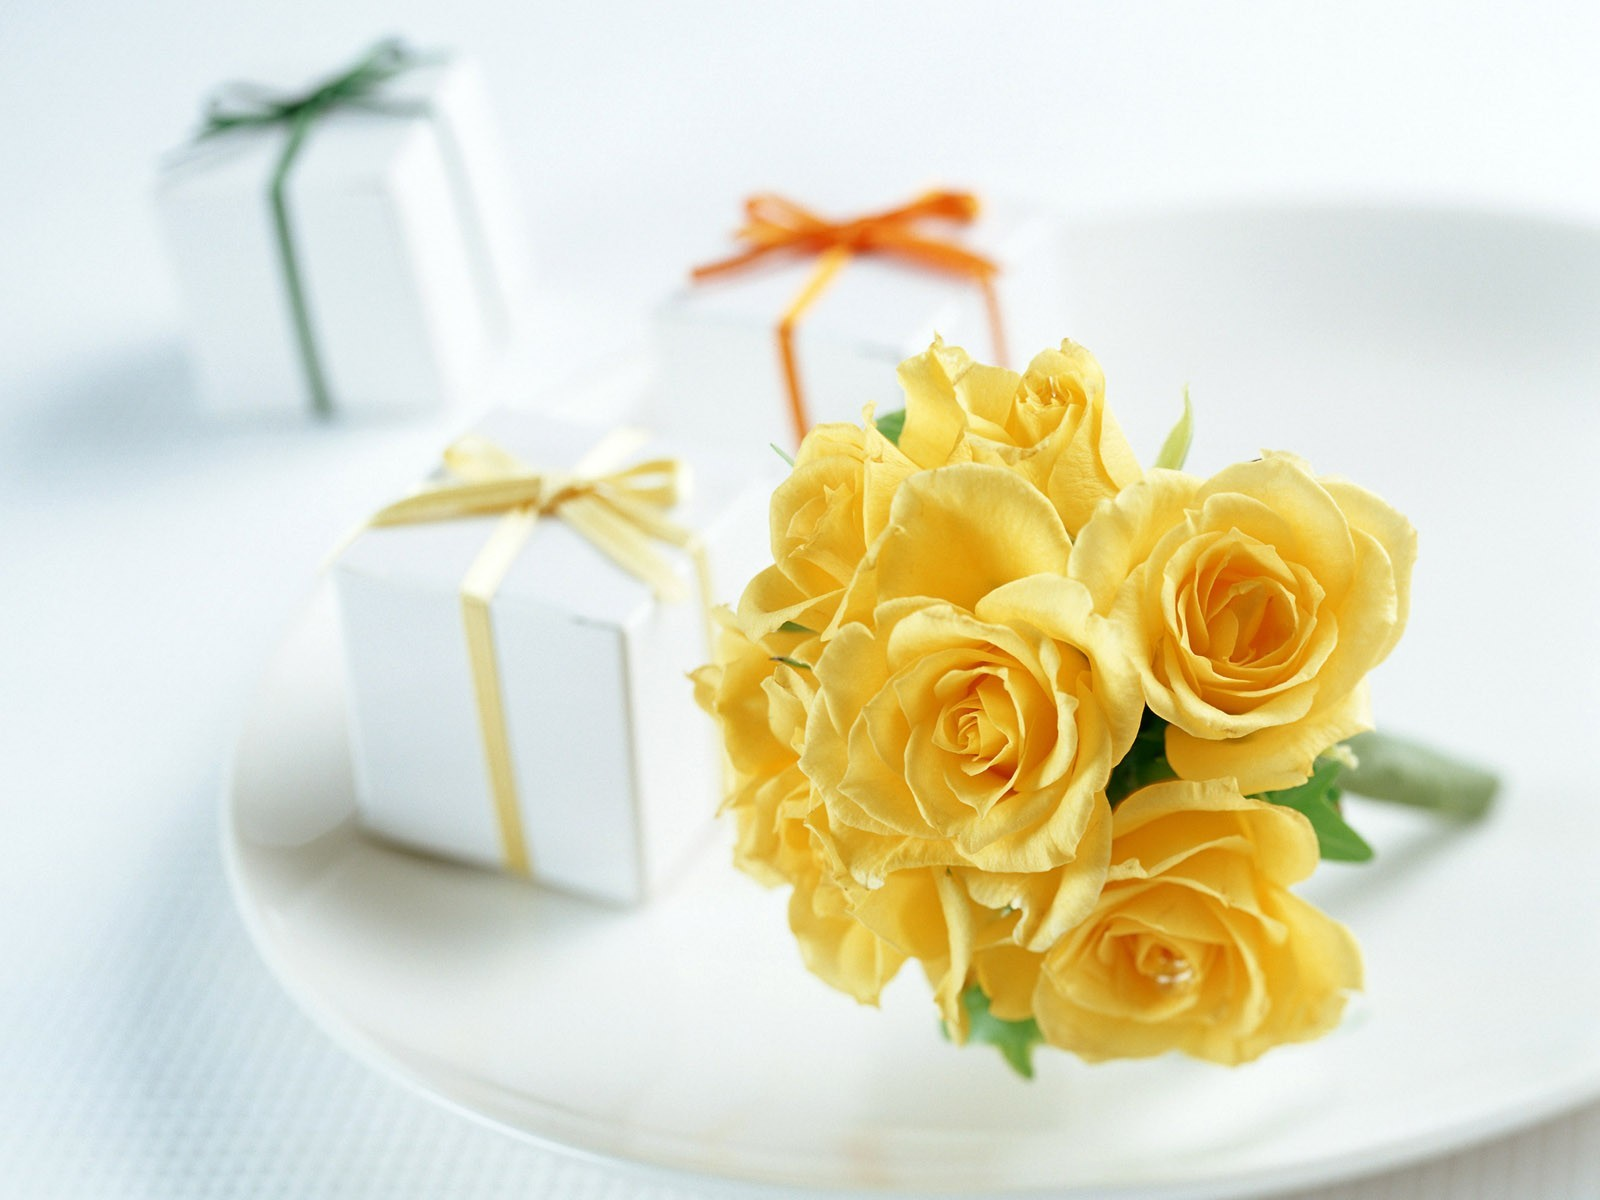 Flowers presents Gifts decoration HD Wallpaper